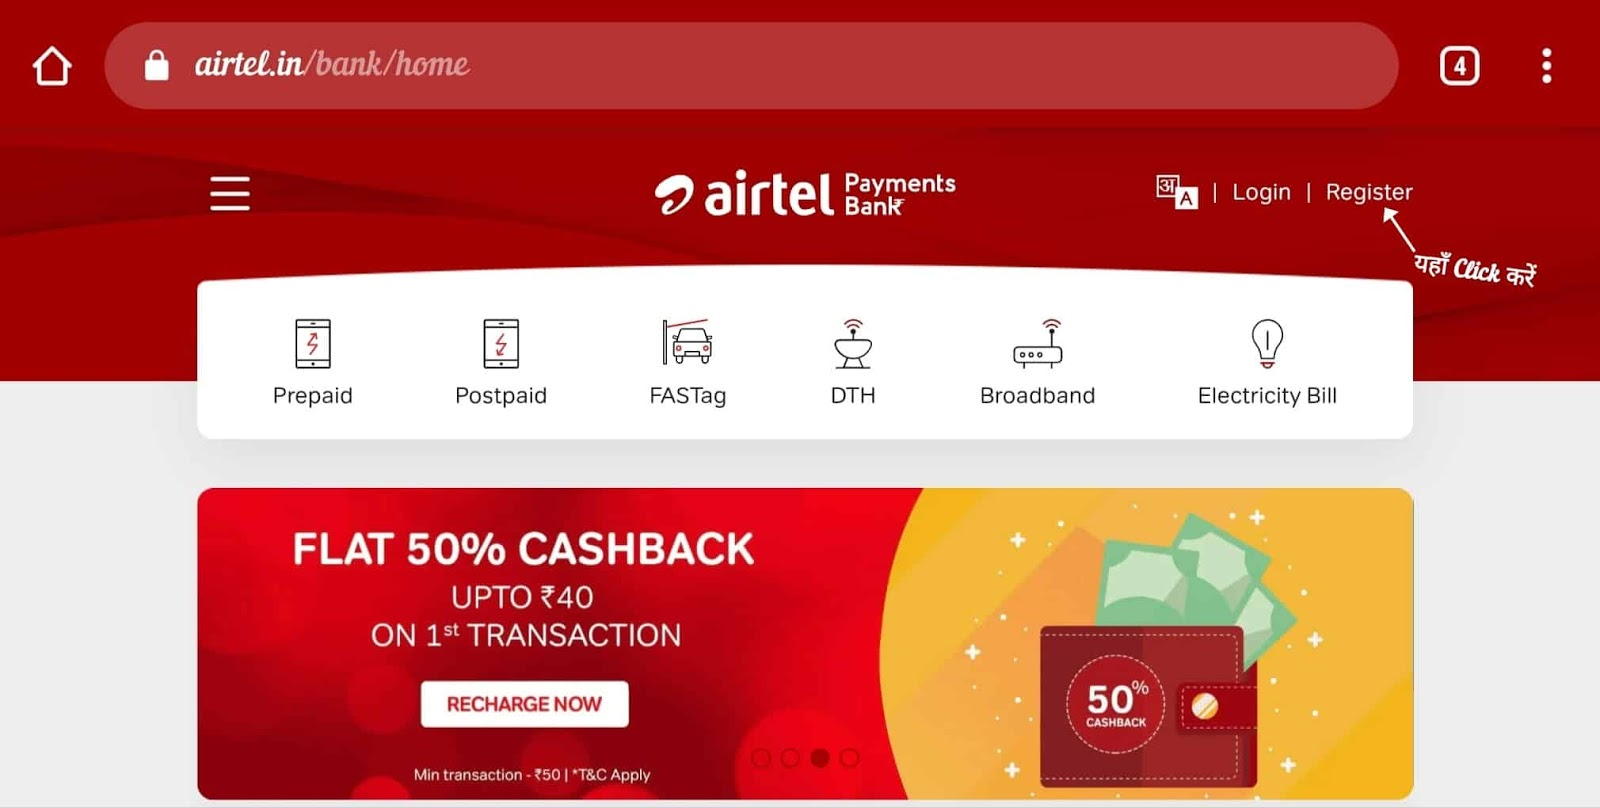 Airtel Payment Bank Account